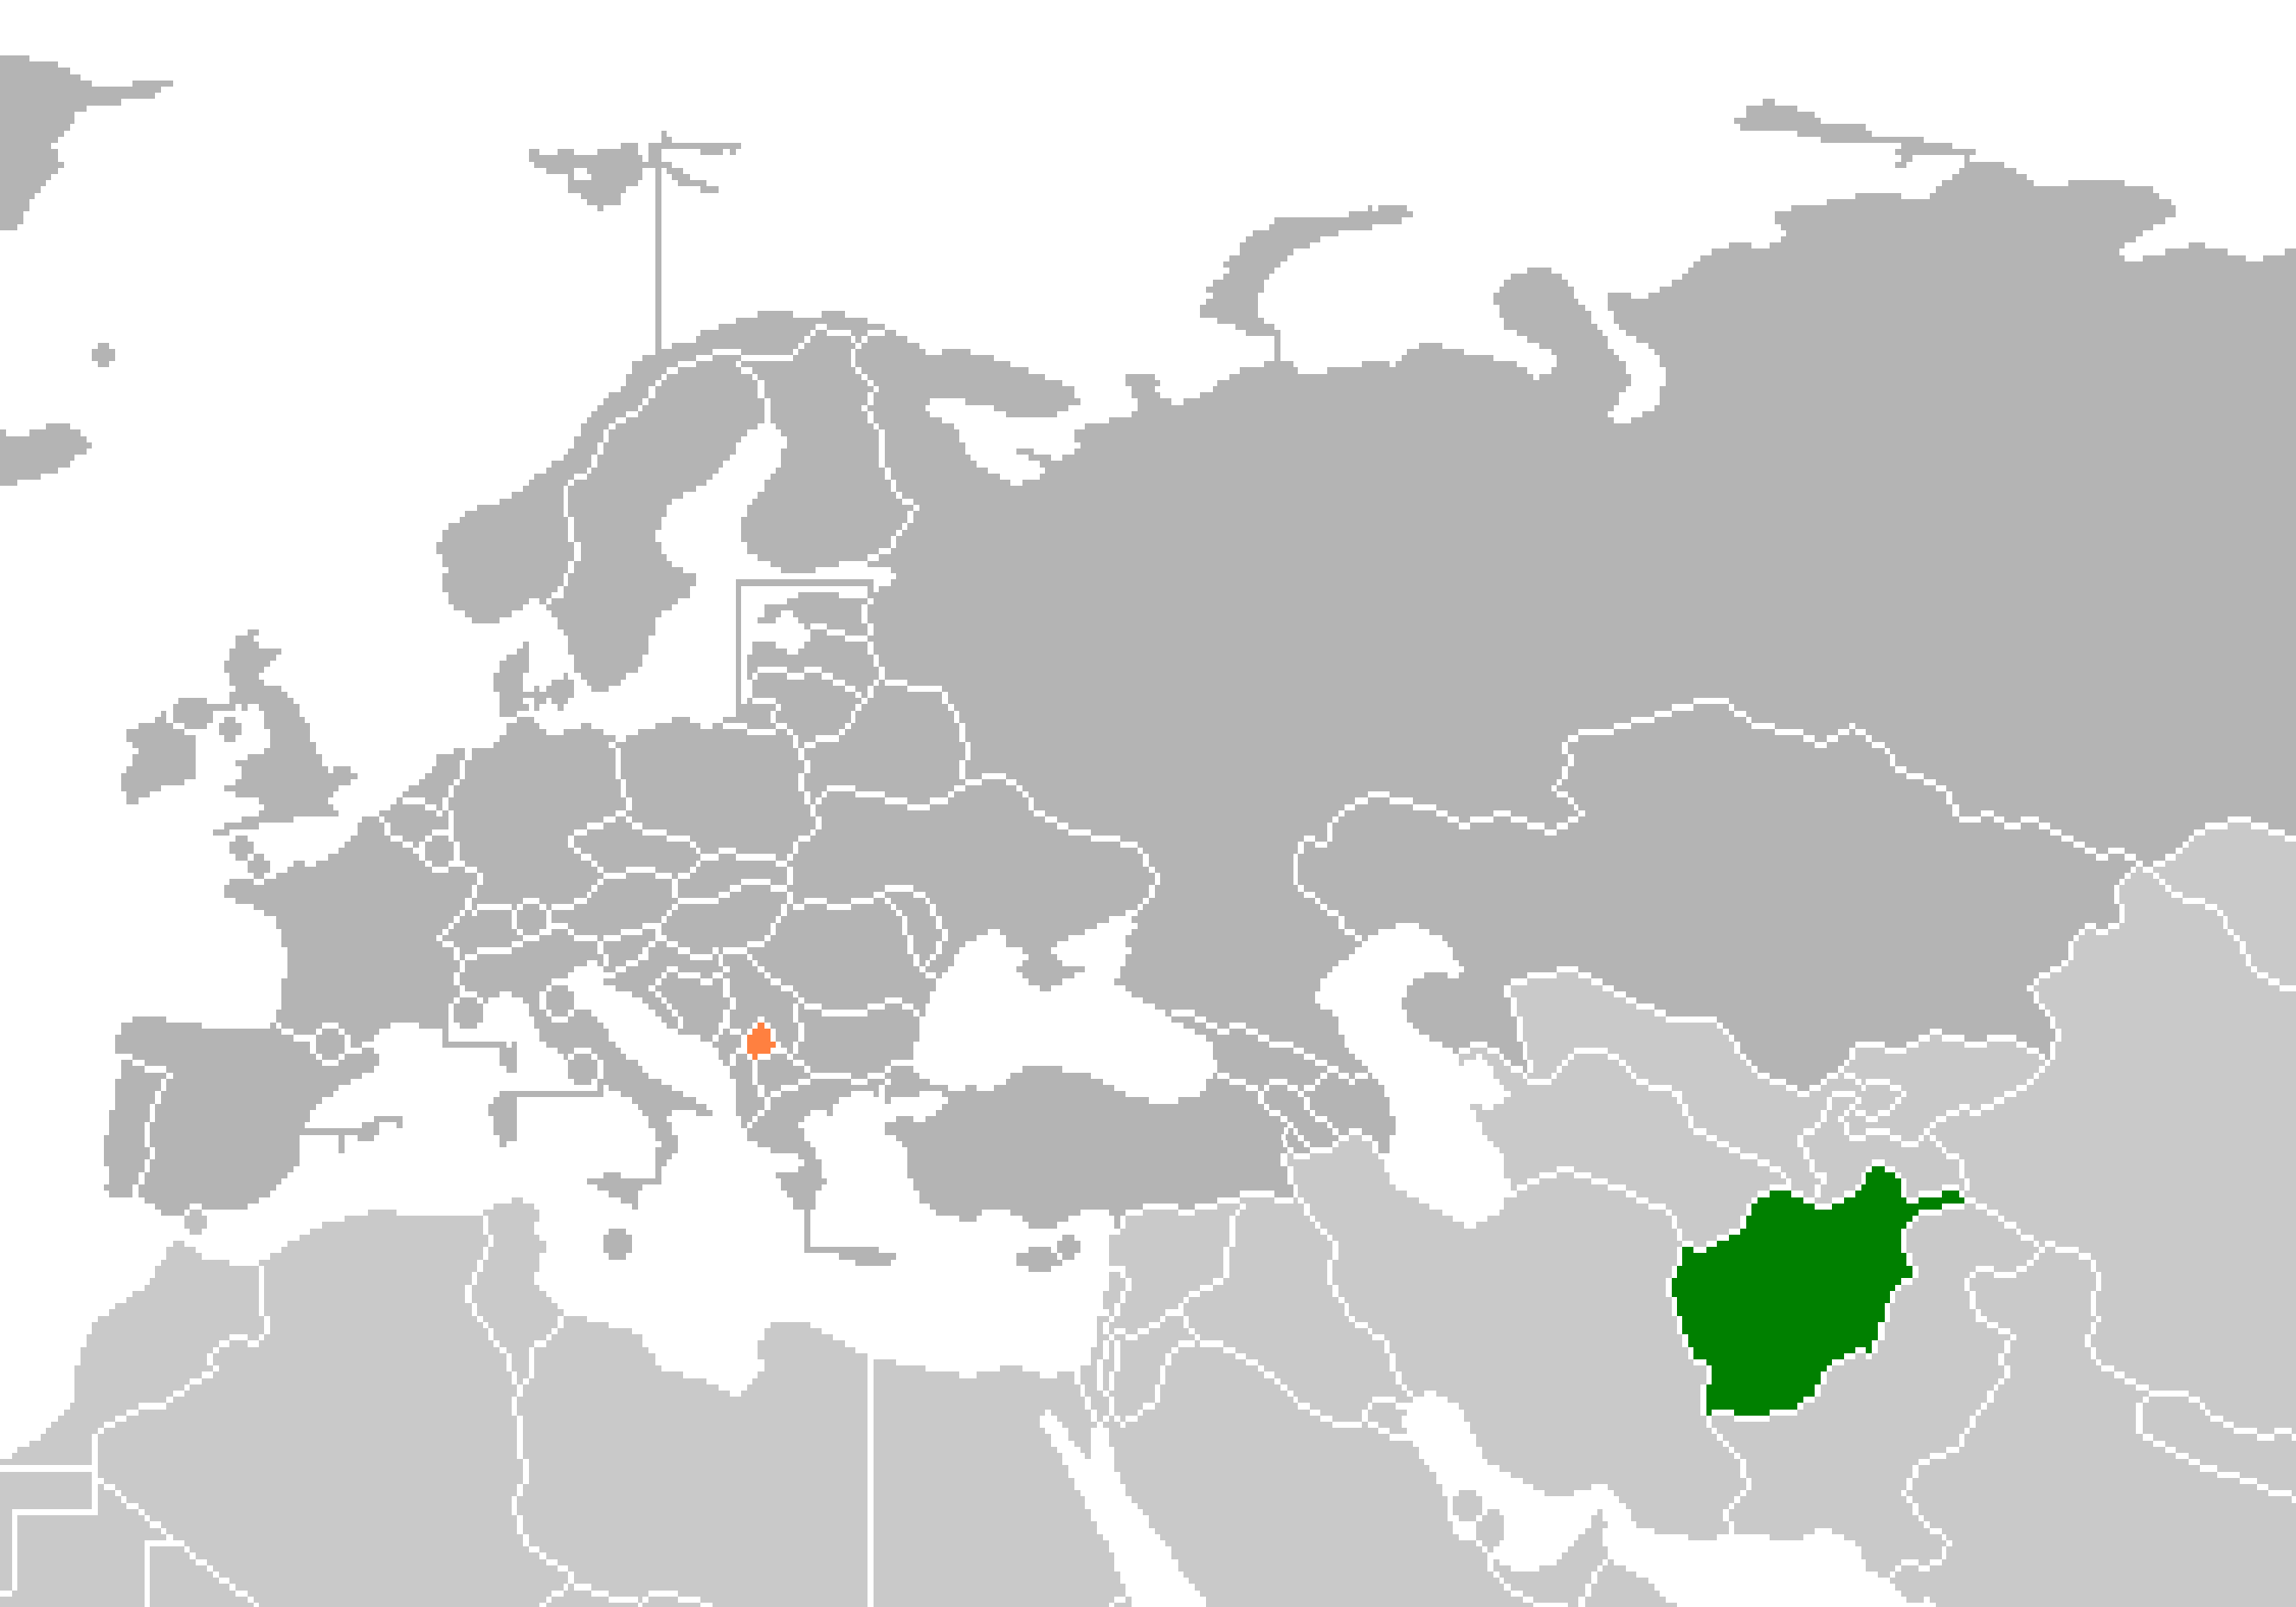 Kosovo Map In World. Afghanistan Kosovo Locator Mapsofnet  map png Image Blank Europe Map Without And Liechtensteinpng Health